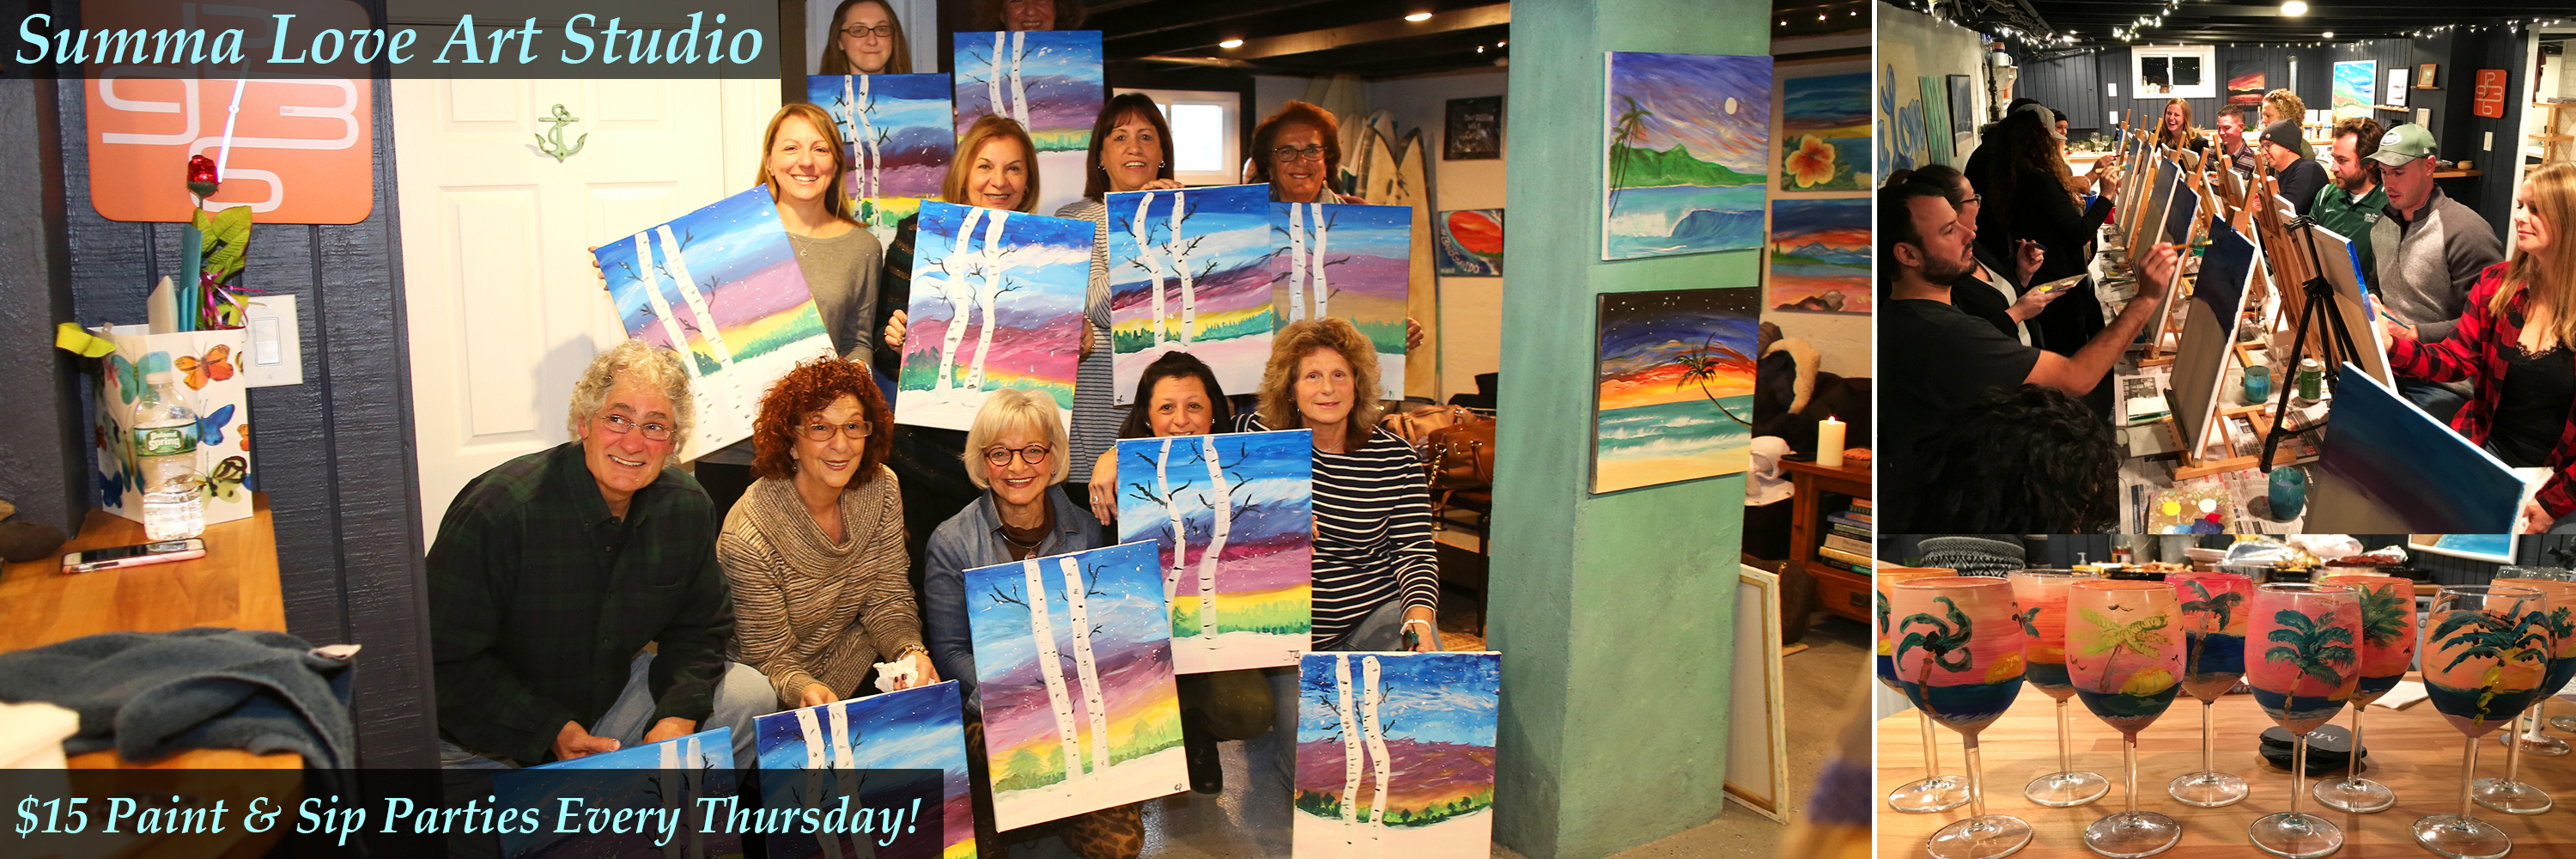 Monmouth County Sip and Paint Parties, Art Studio in Long Branch